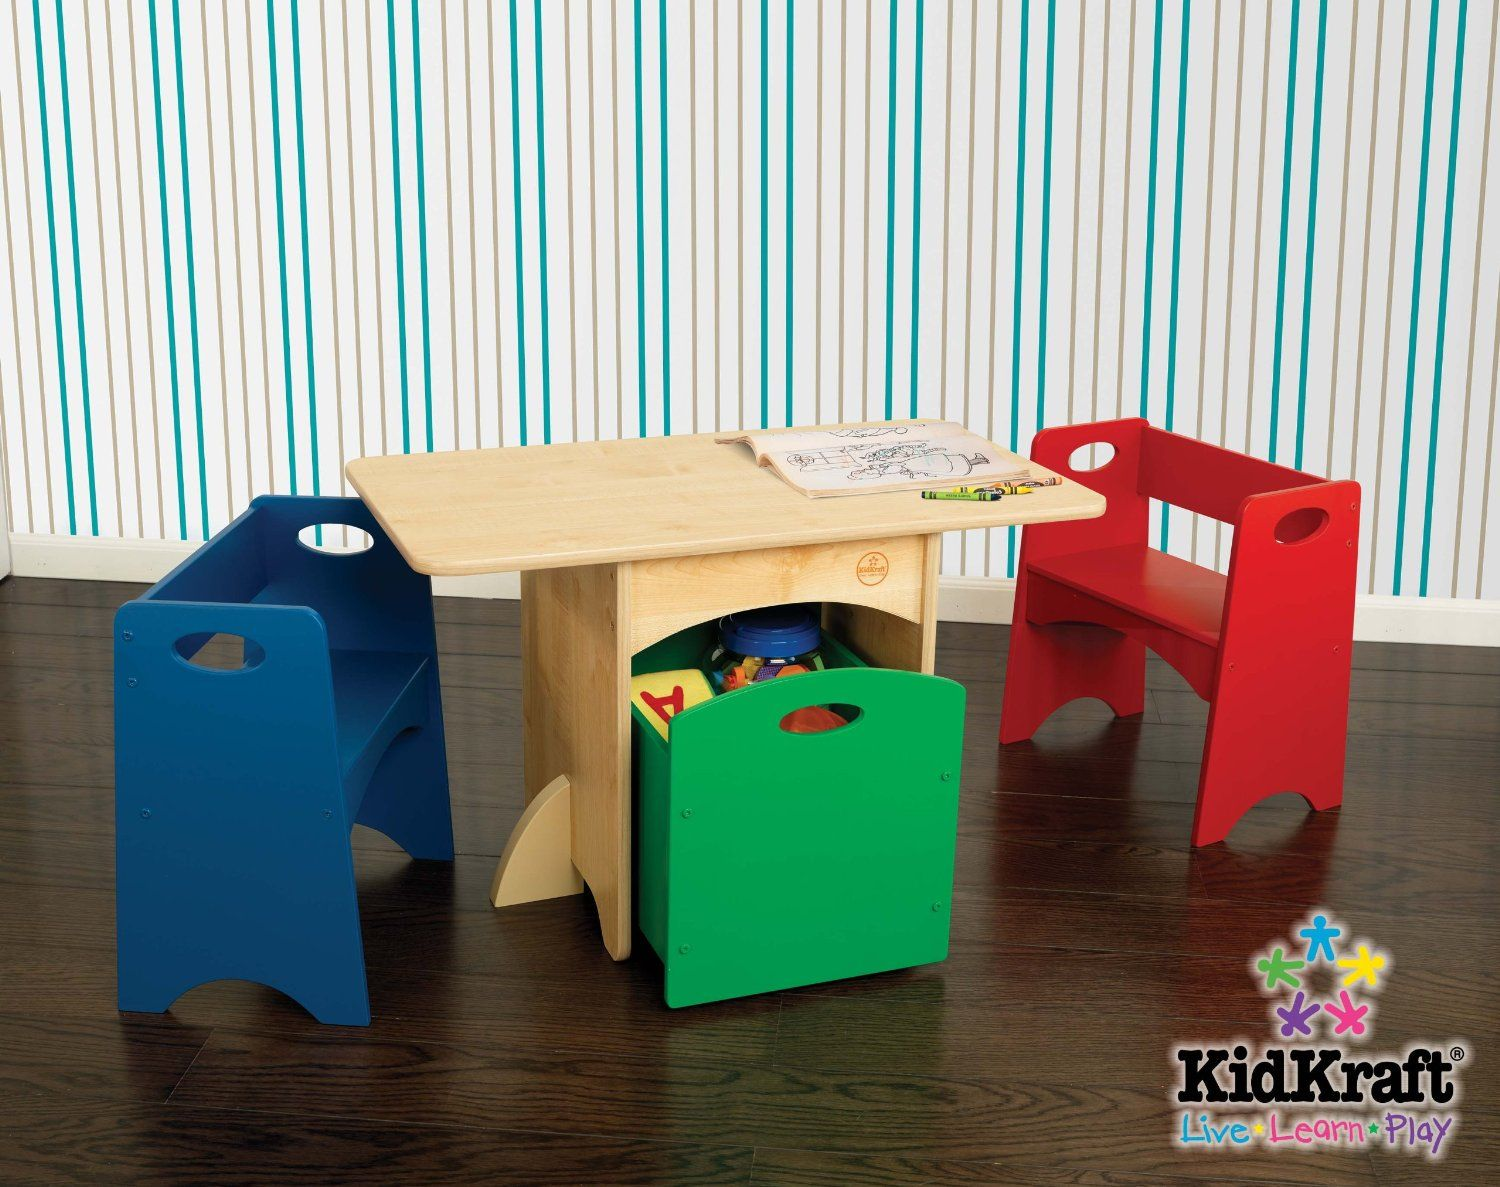 Kids Table and Chair Set - Natural Table with Primary Benches - KidKraft Furniture - 26161 - & $118.00 Kid Kraft table toy storage with benches. Great way to ...